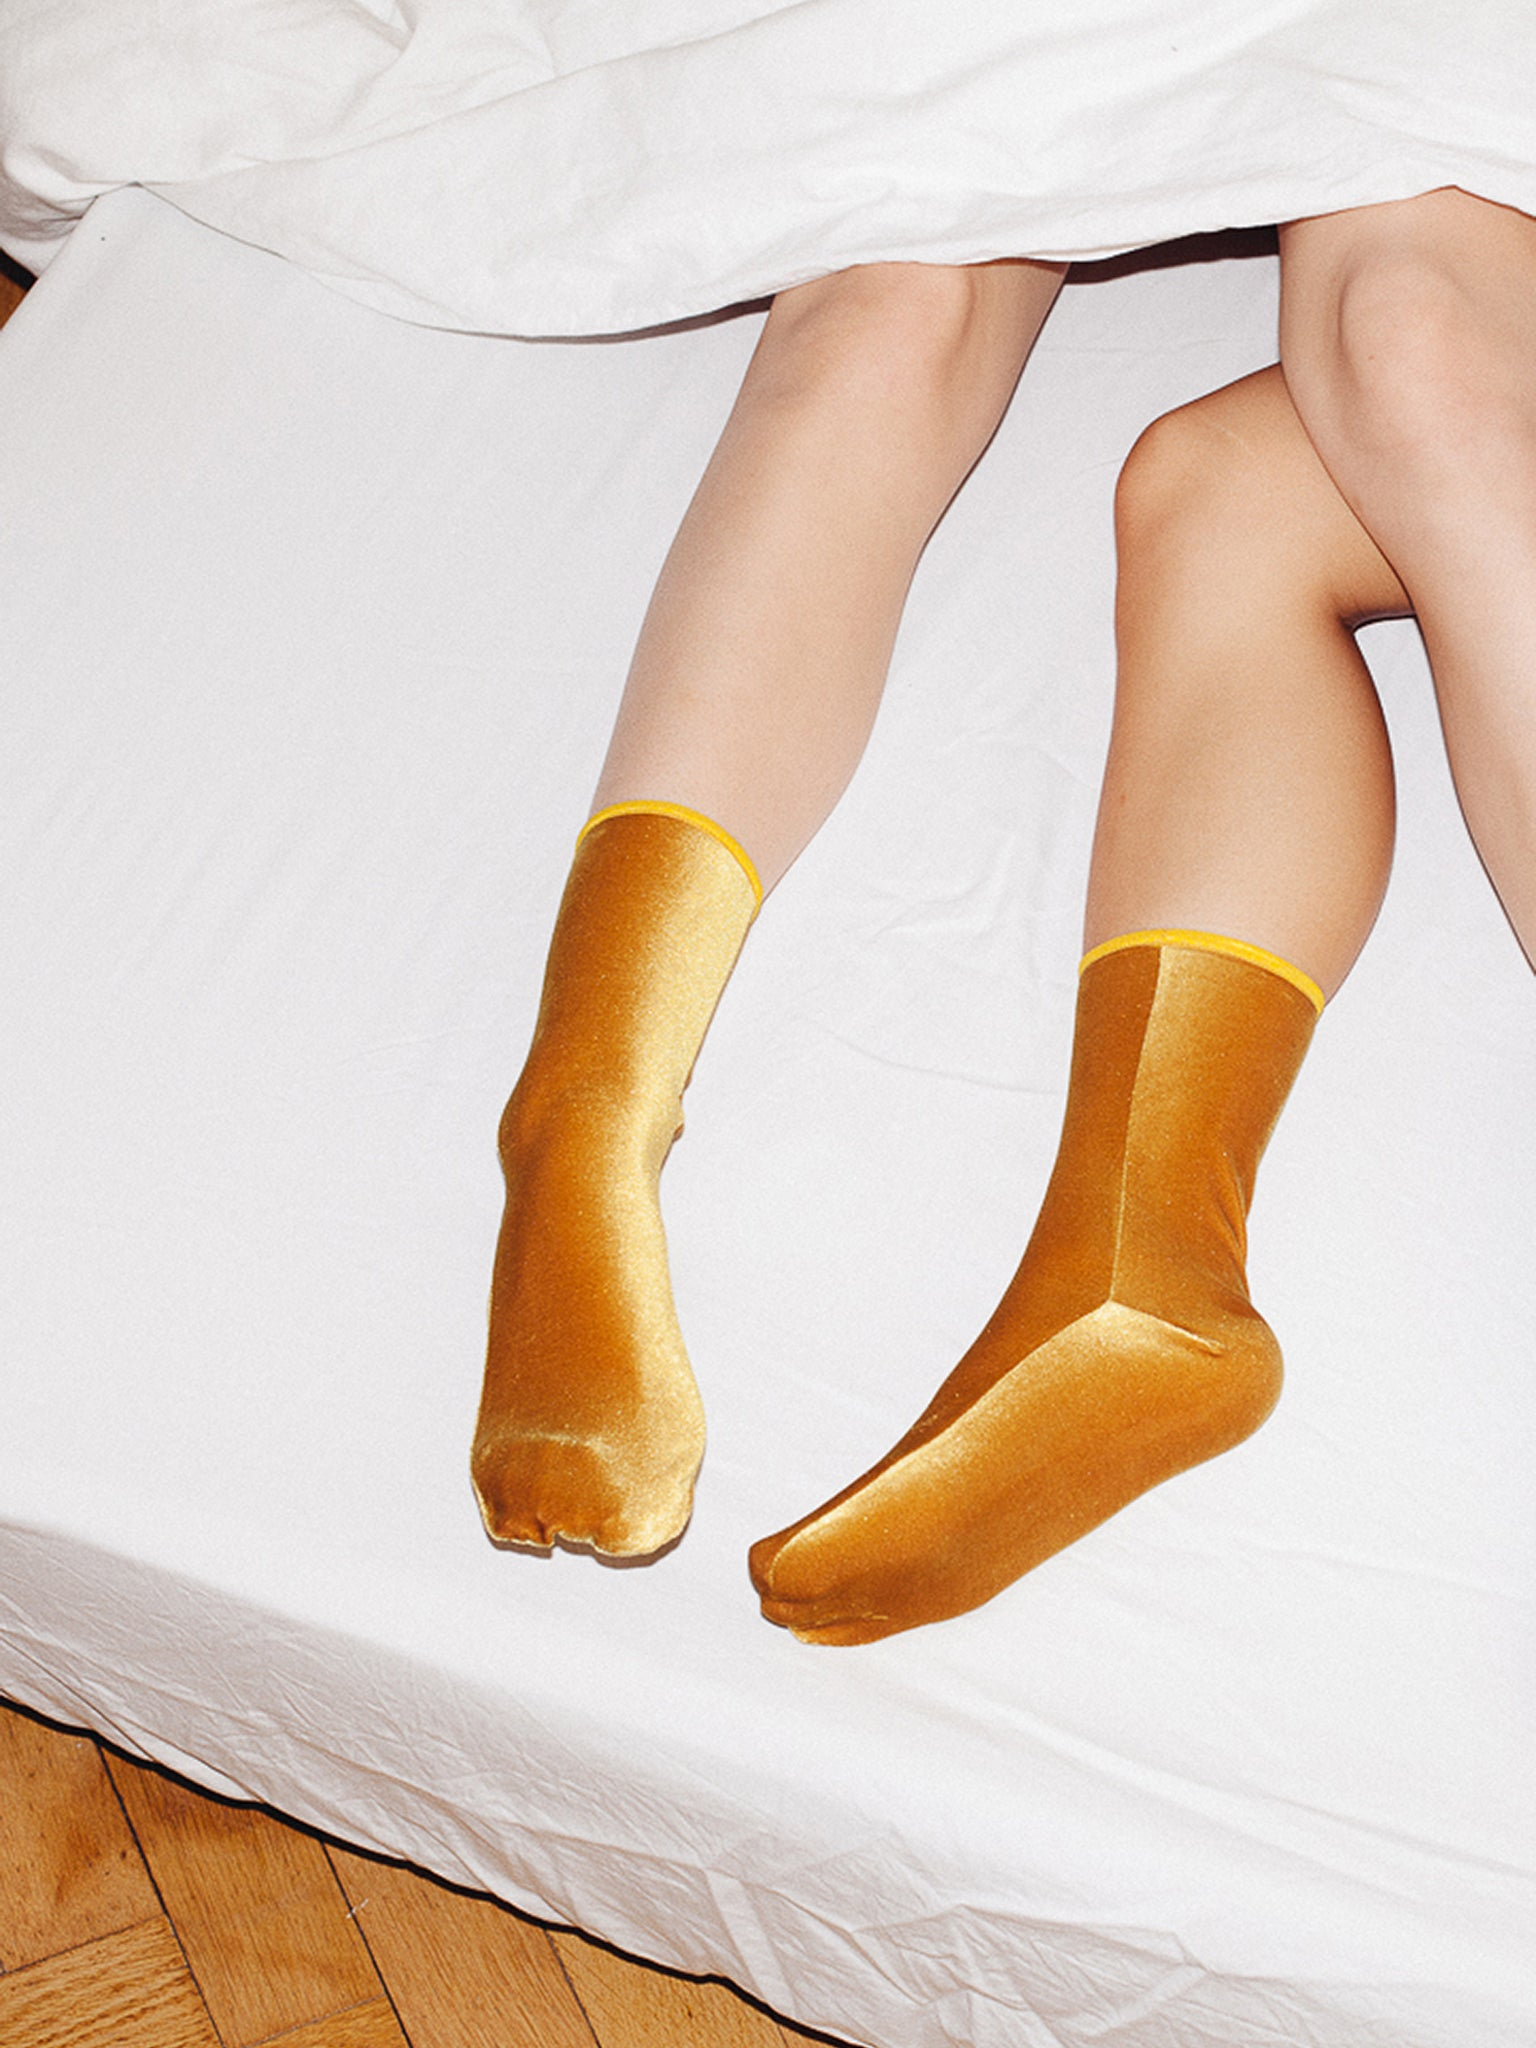 Velvet ankle socks, mustard yellow